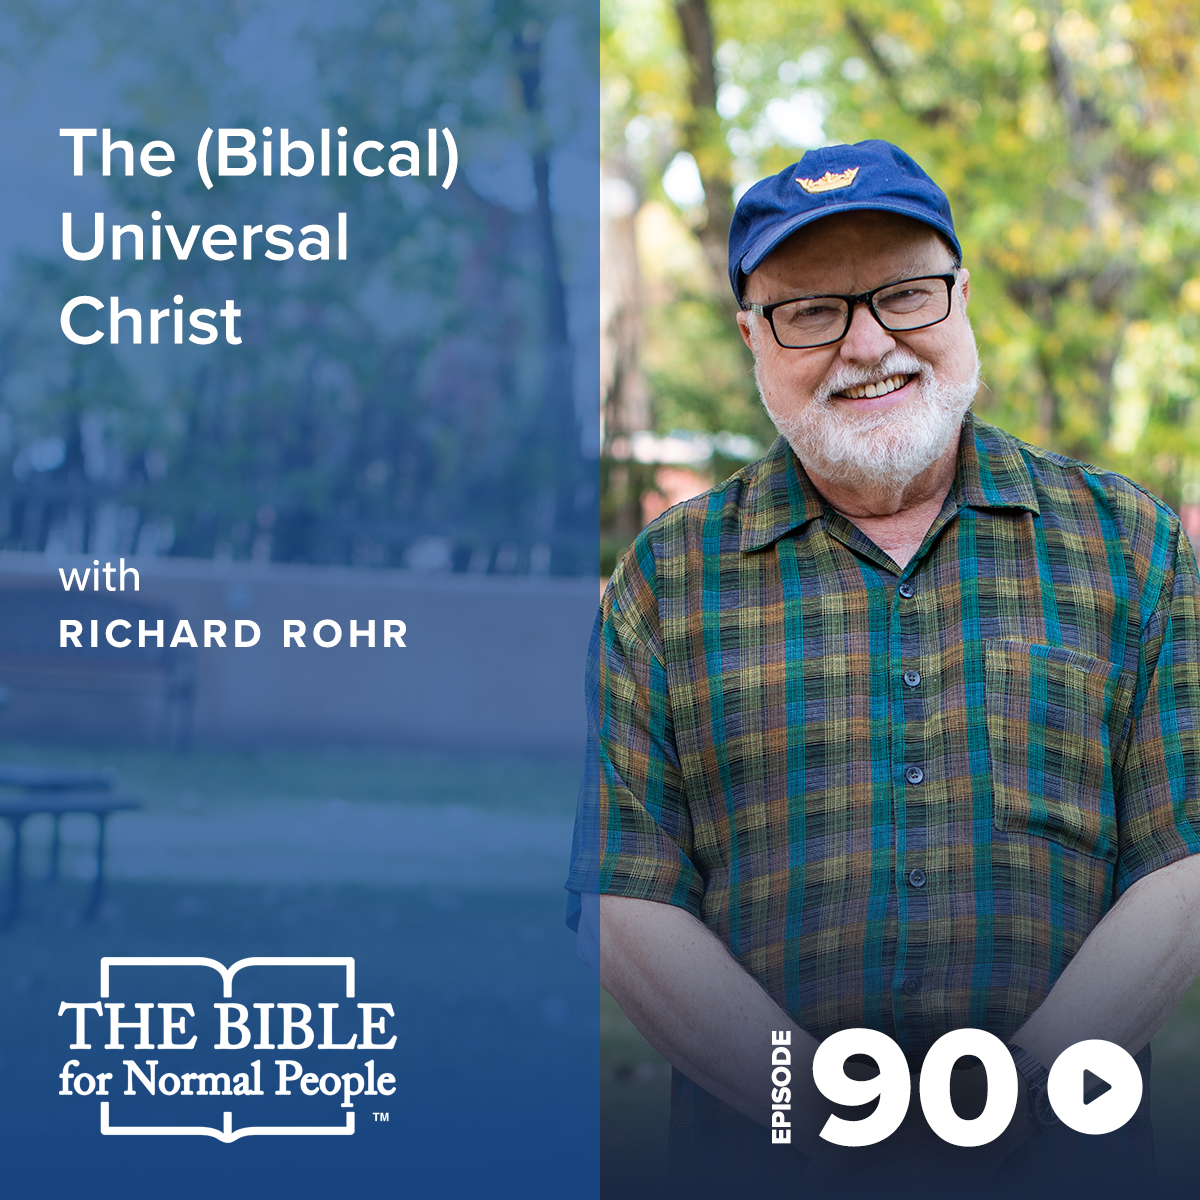 Episode 90: Richard Rohr - The (Biblical) Universal Christ